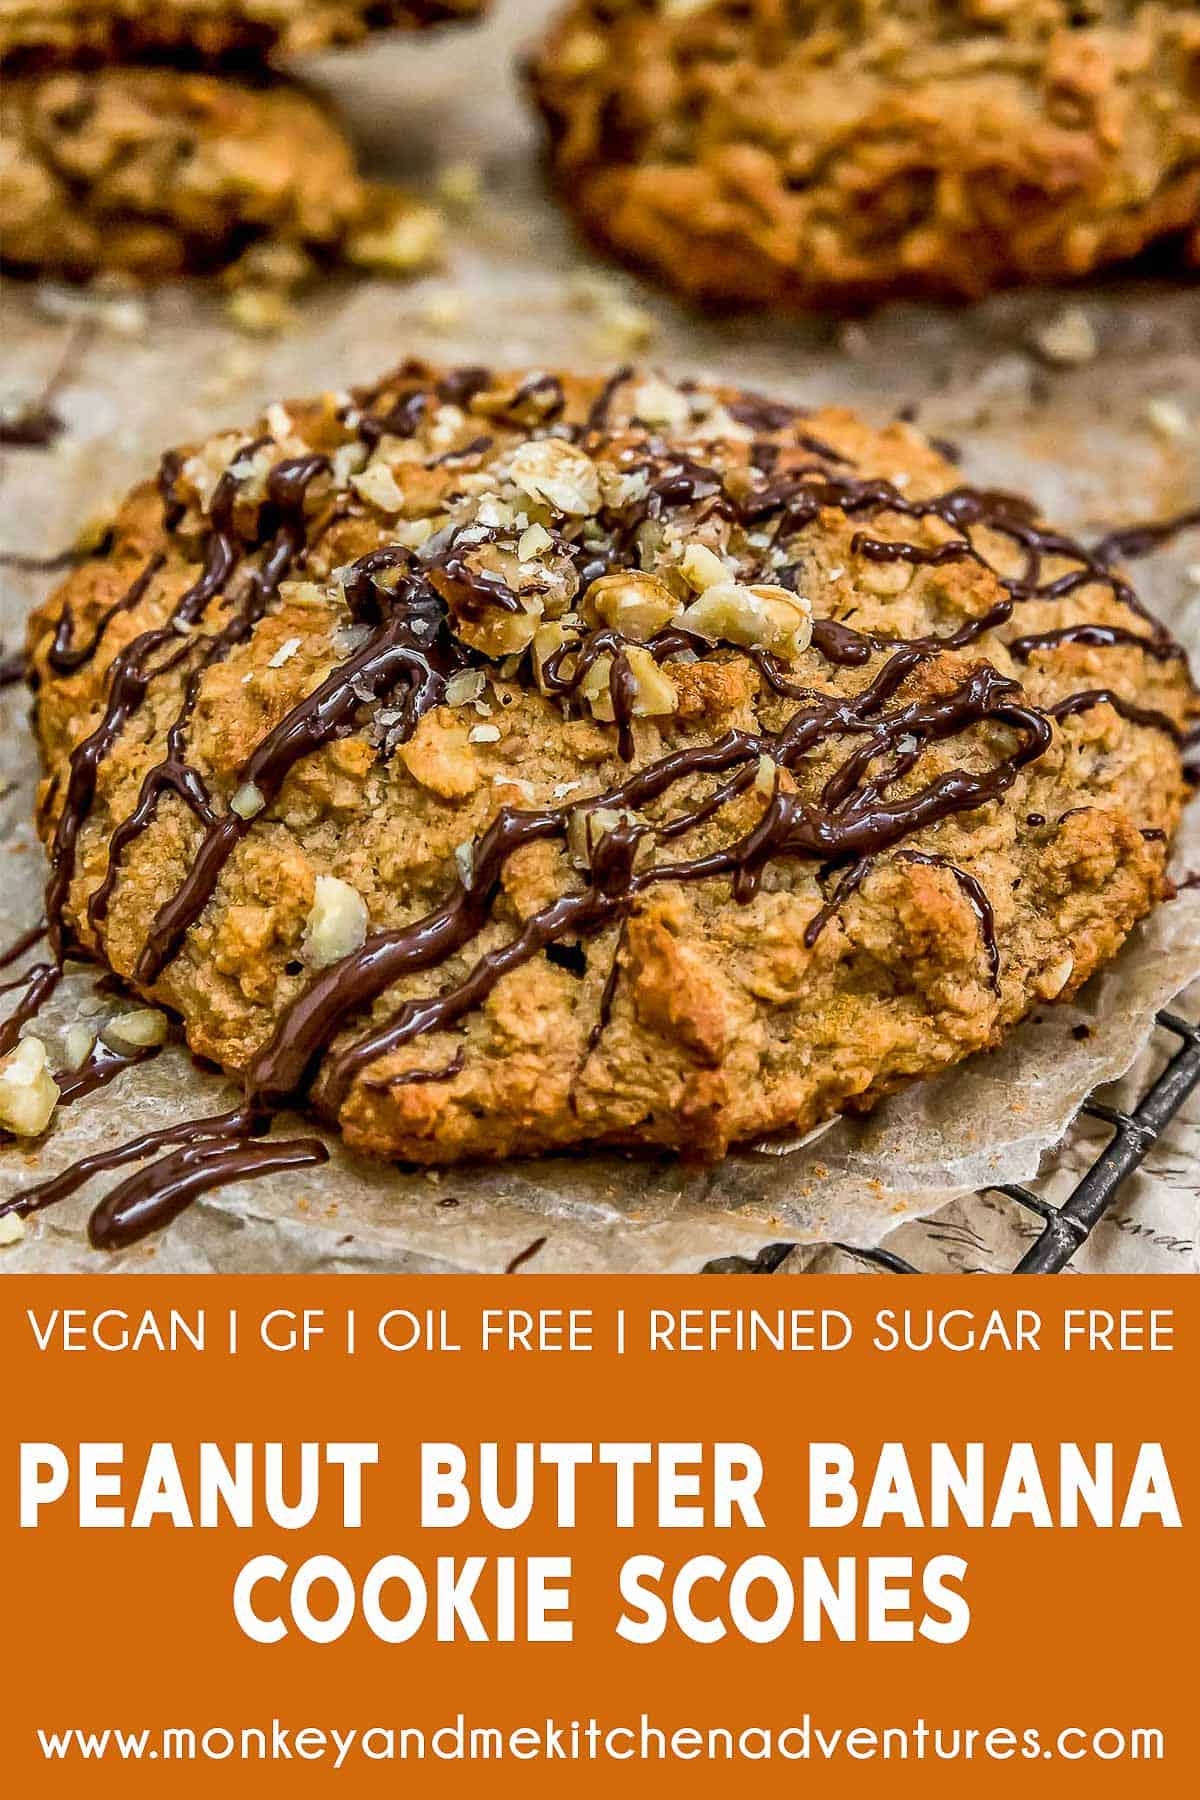 Peanut Butter Banana Cookie Scones with text description